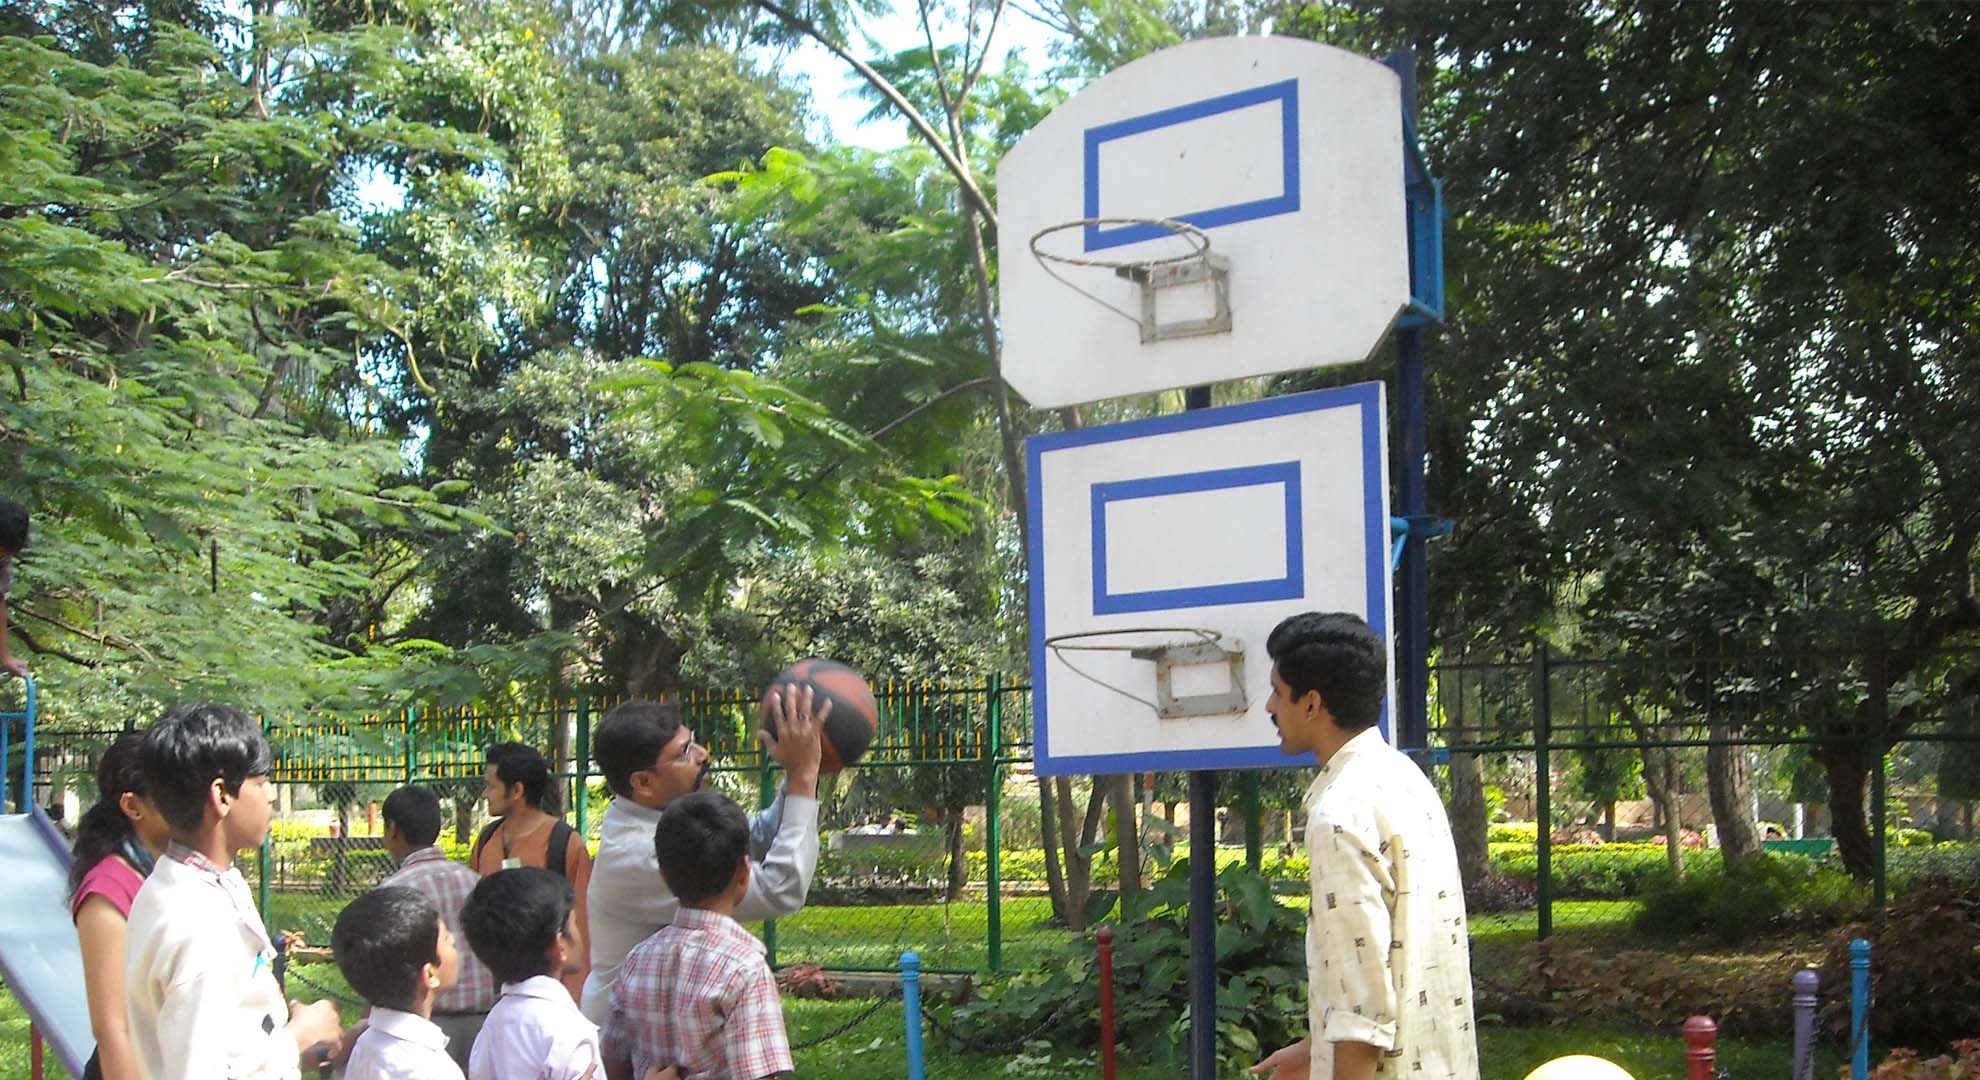 Inclusive public play spaces for children with disabilities in Indian cities.